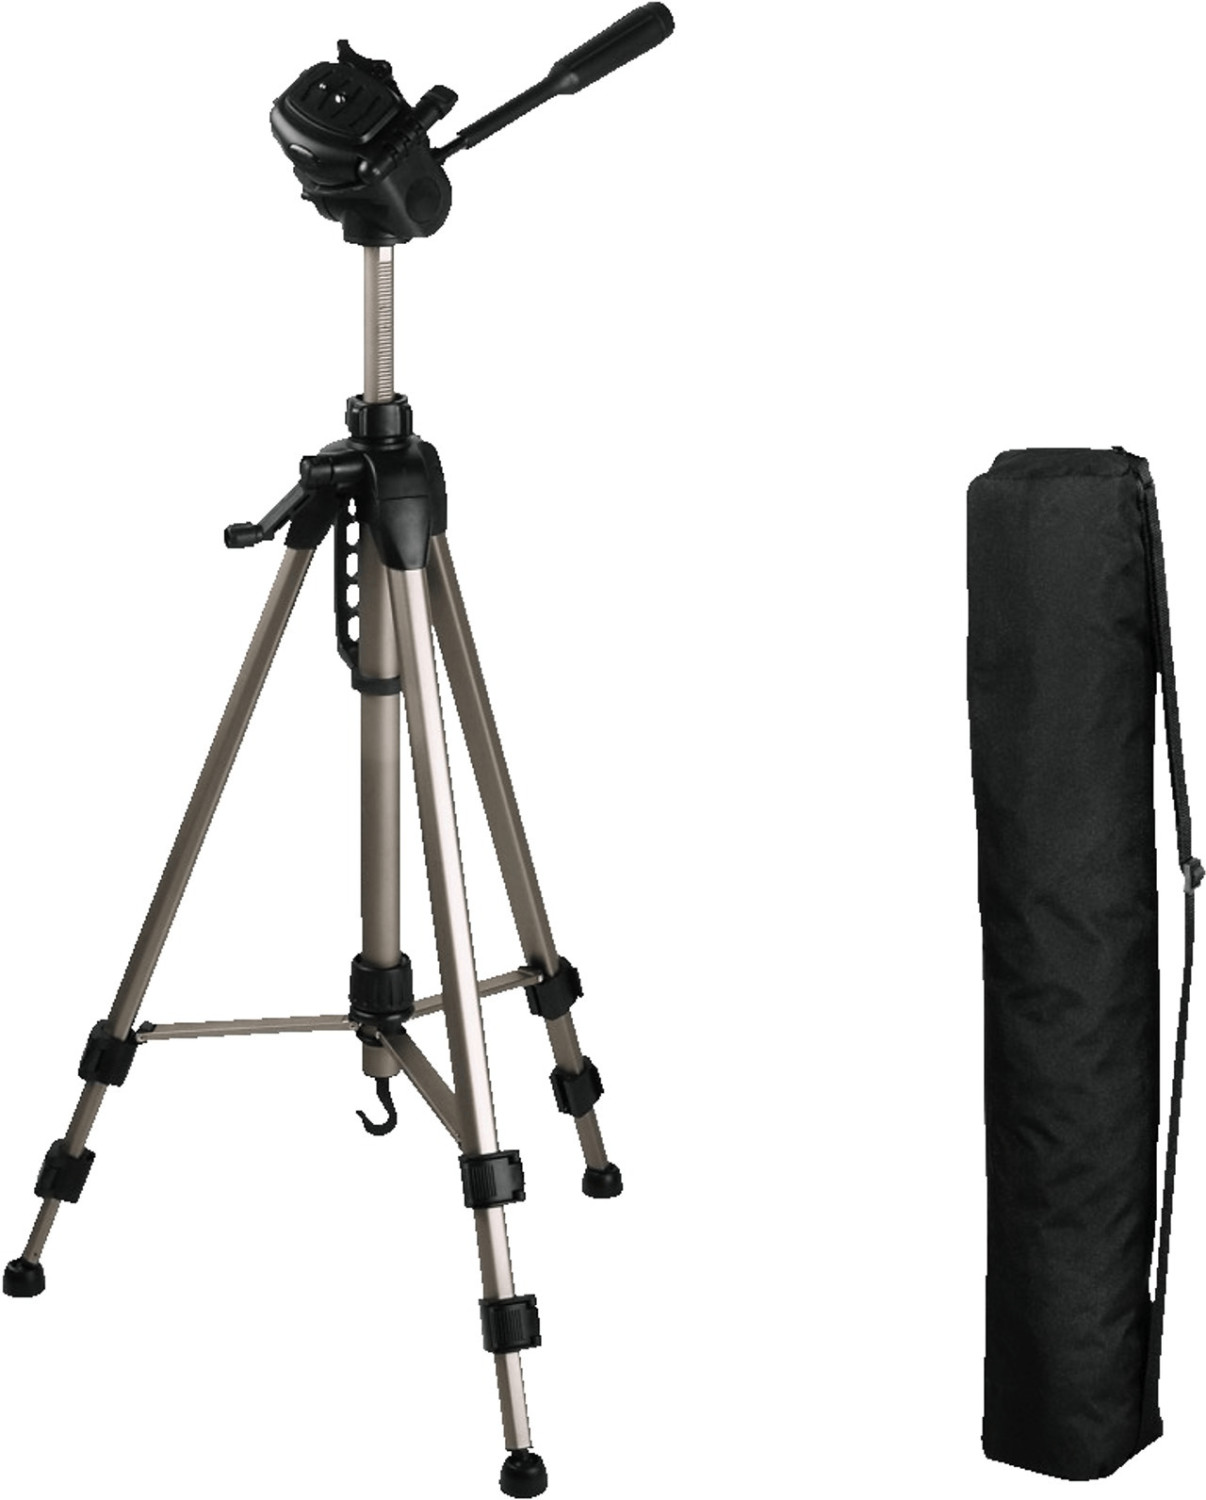 Hama Aluminium Camera Tripod Star 62 with Free Case, Brand New, 00004162